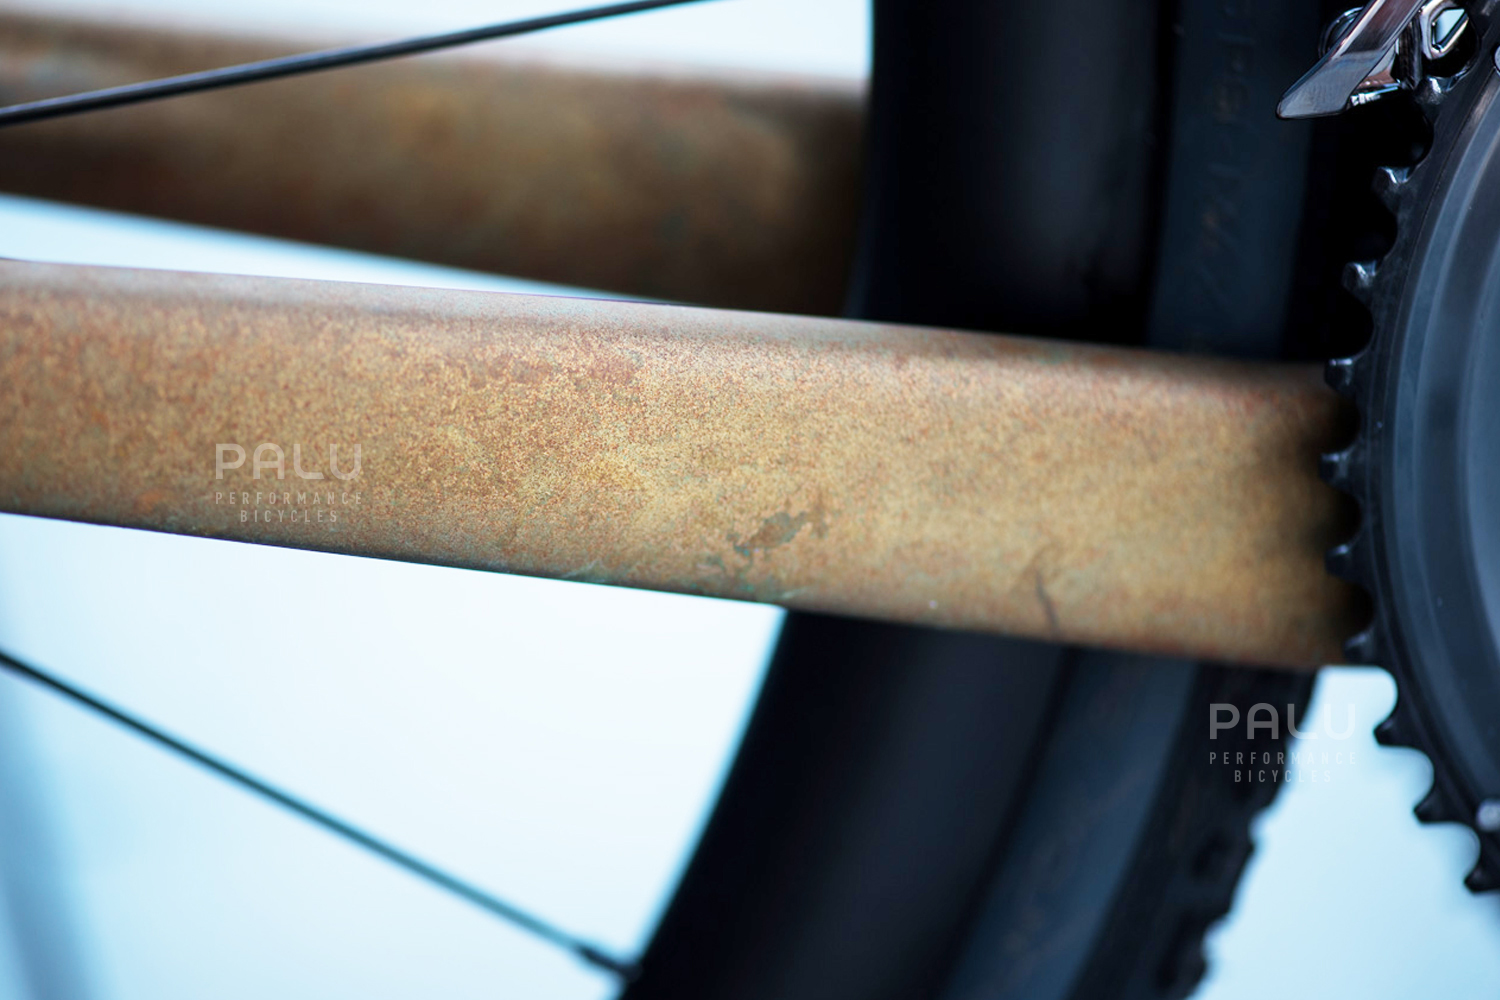 Palu-Italian-Carbon-Fibre-Gravel-E-Bike-Palubicycles-London_0008_Layer 34.jpg